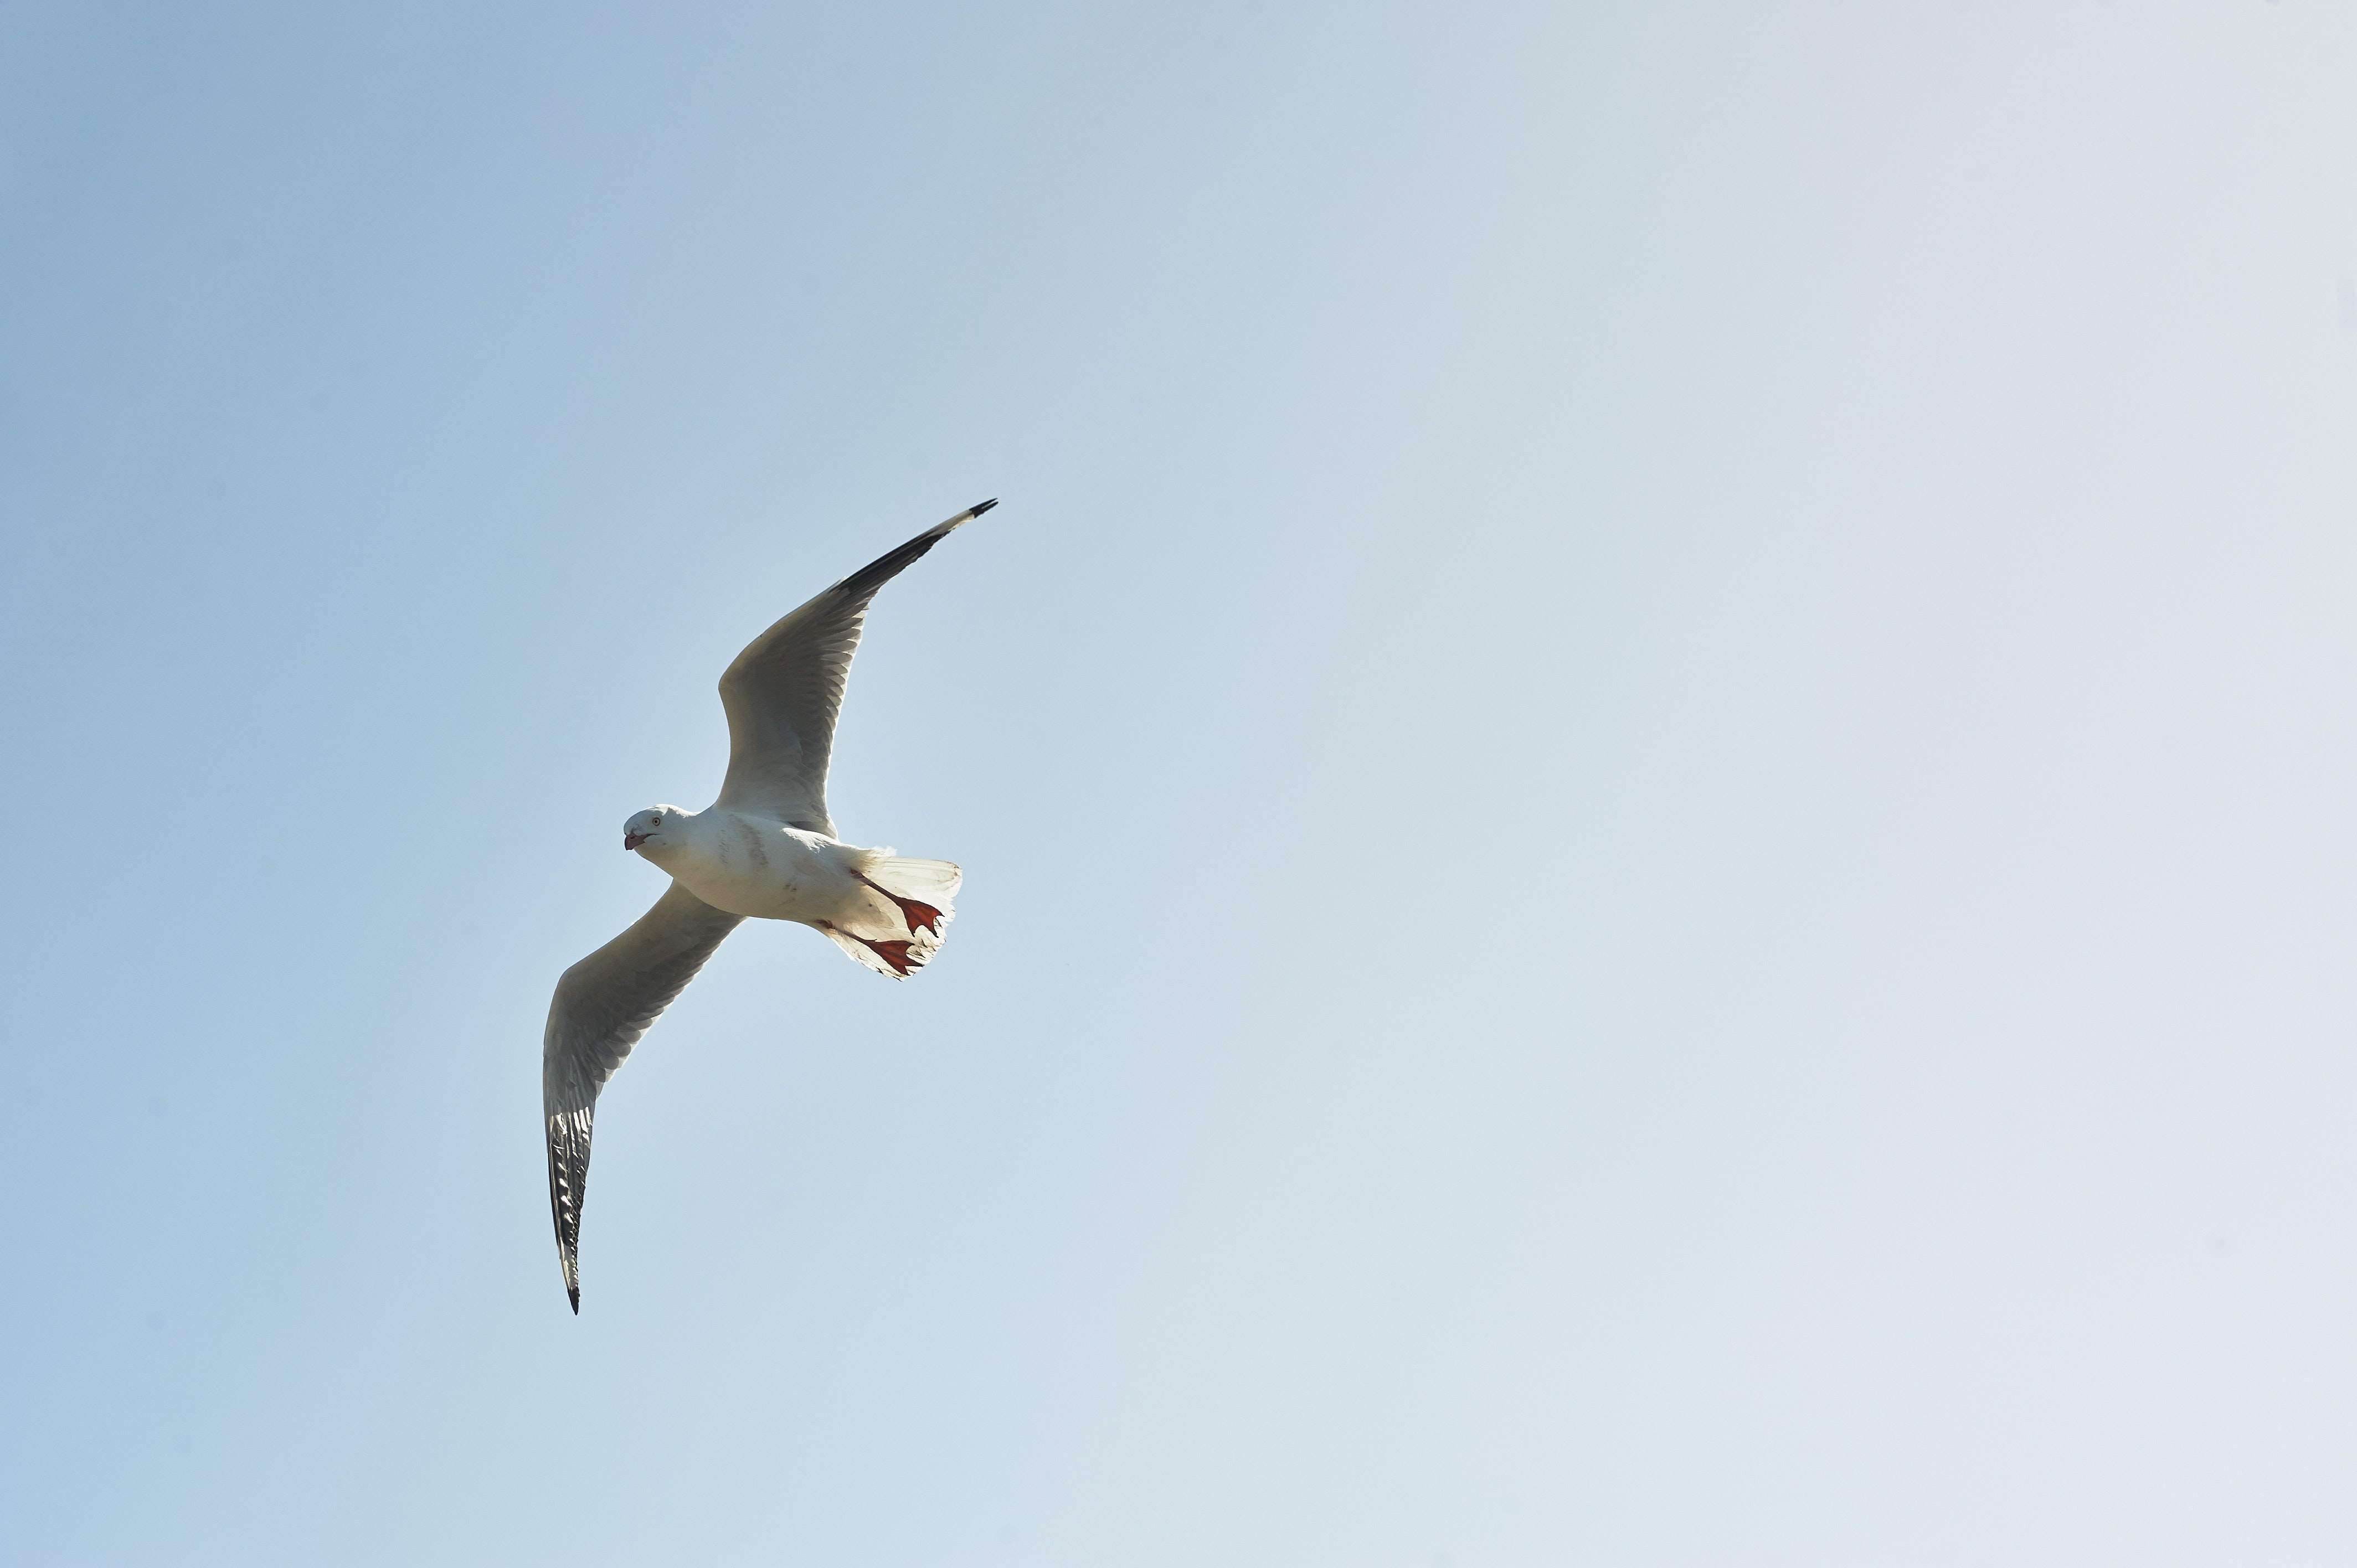 White and grey bird flying in the sky during day time photo